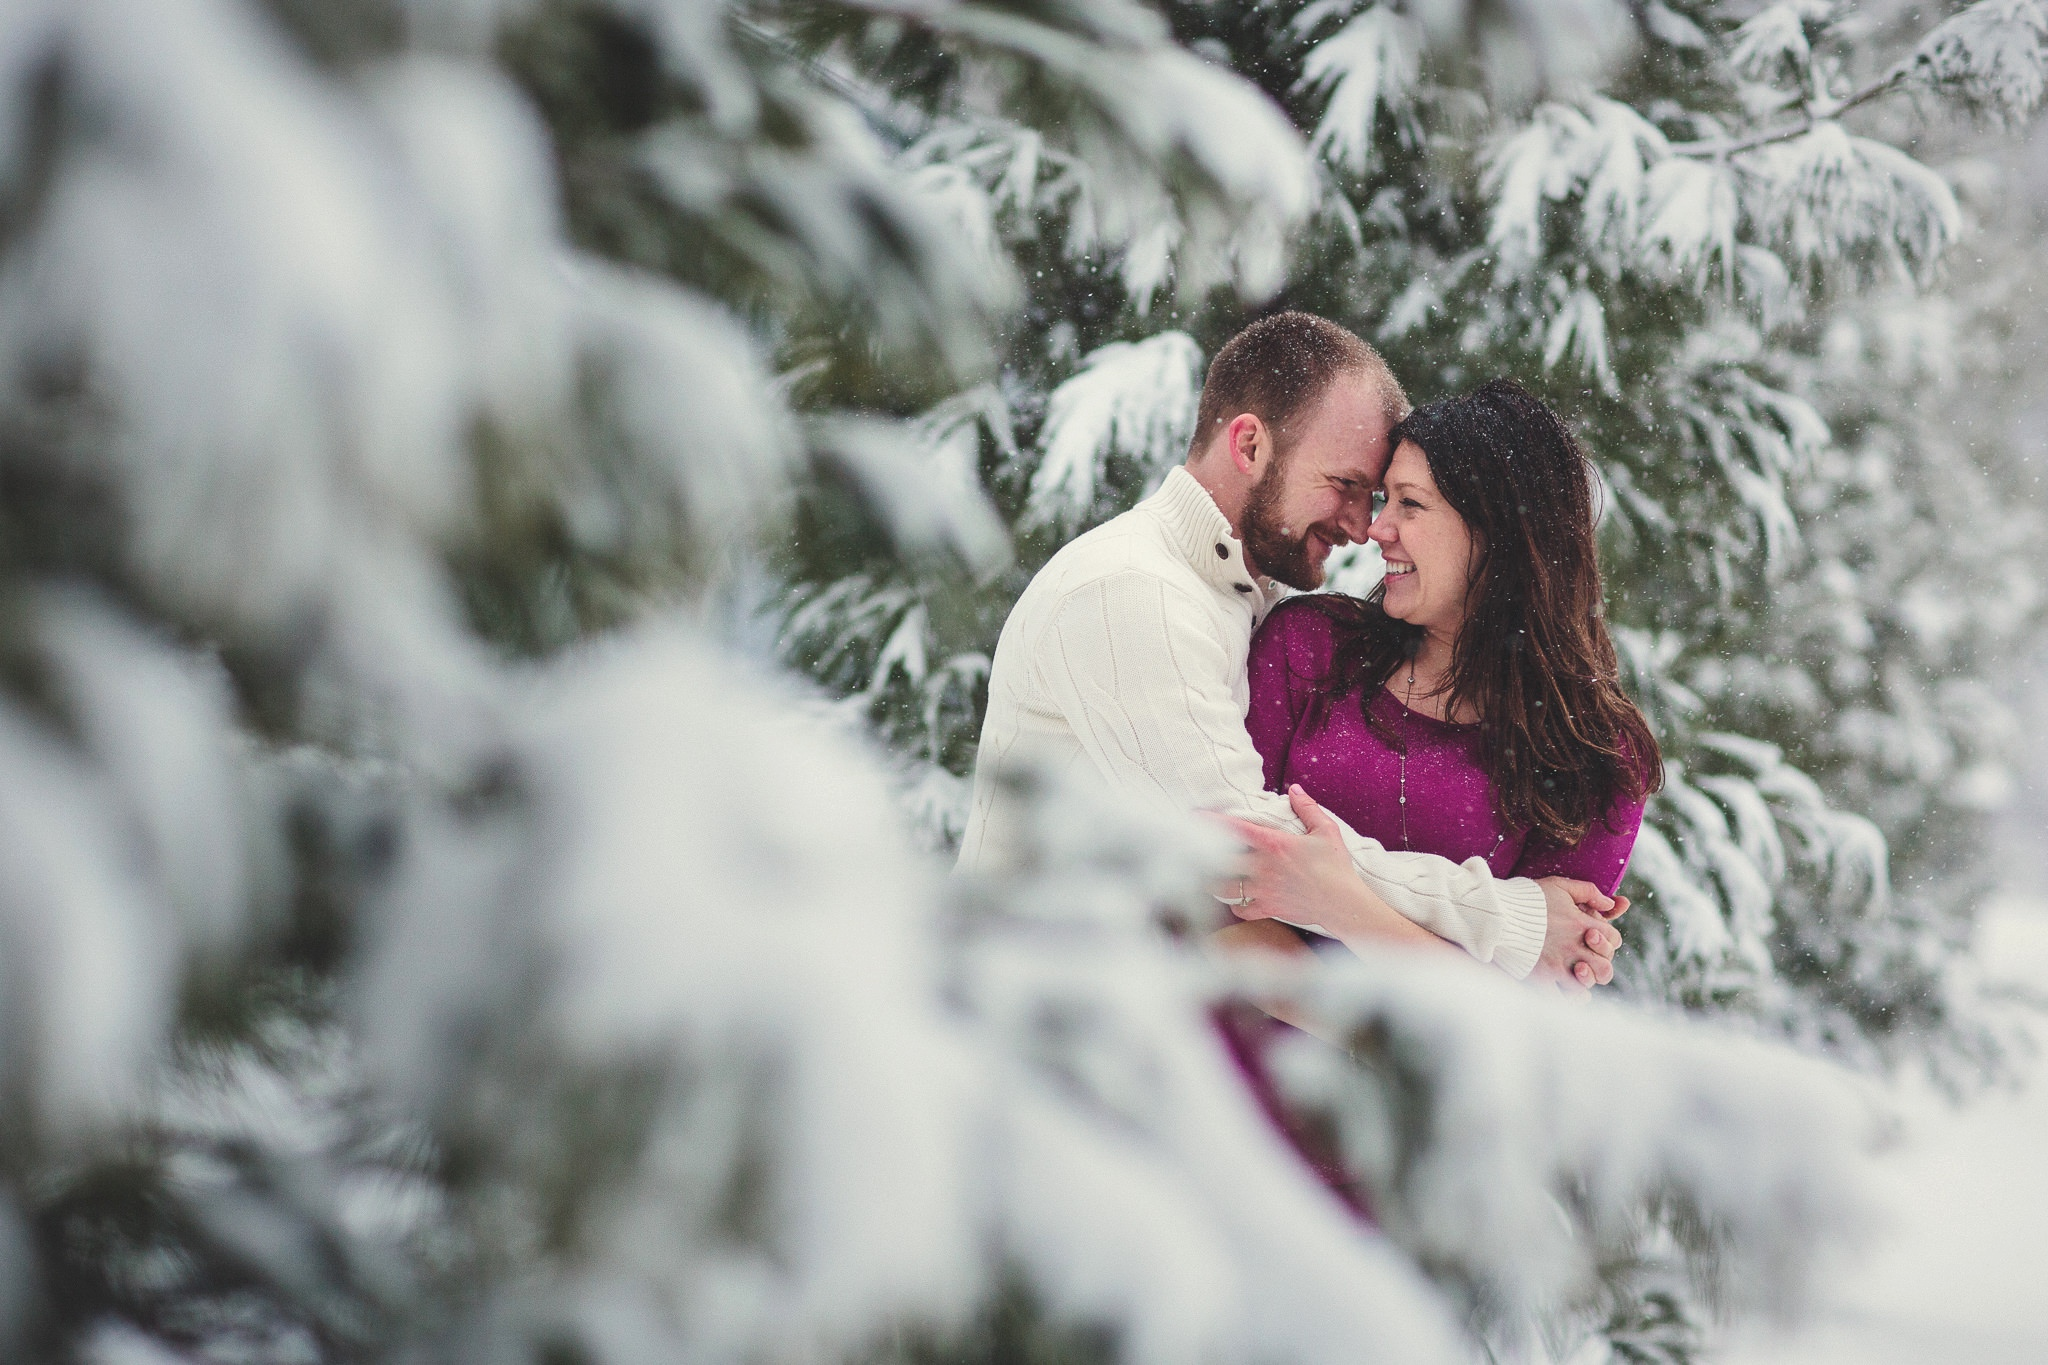 Tiffany and Zach's snowy engagement shoot.